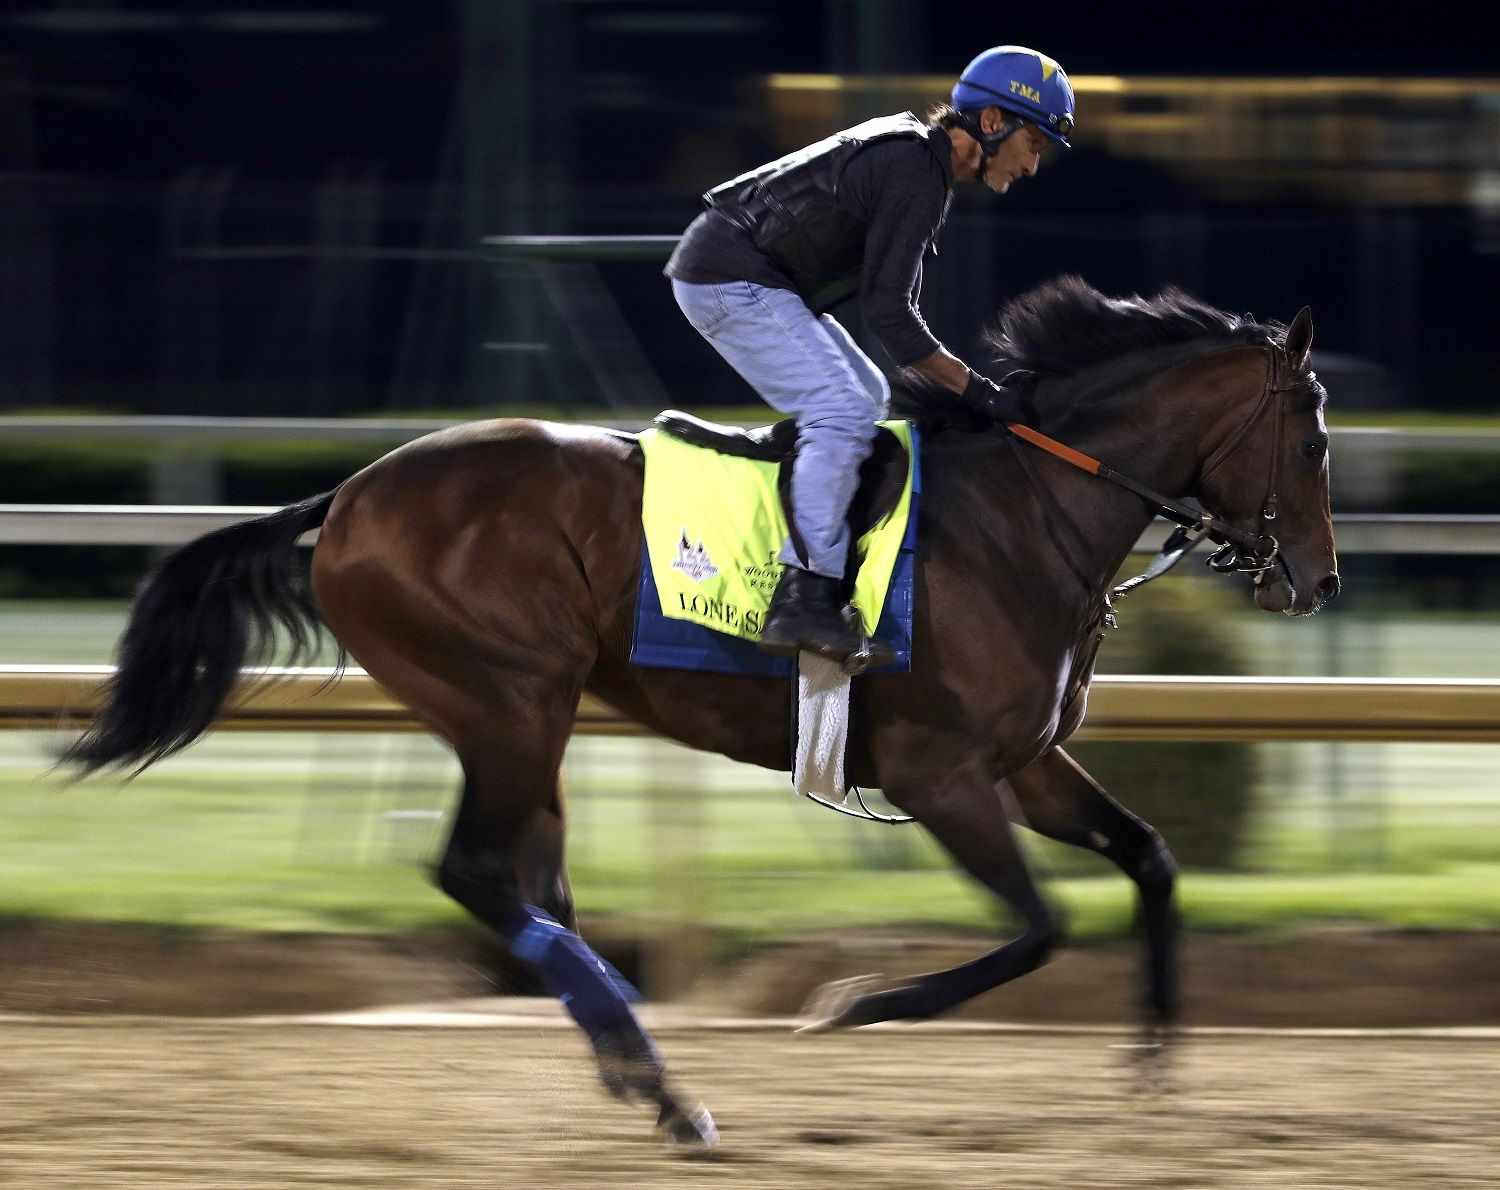 Kentucky Derby hopeful Lone Sailor trains at Churchill Downs Monday, April 30, 2018, in Louisville, Ky. The 144th running of the Kentucky Derby is scheduled for Saturday, May 5. (AP Photo/Charlie Riedel)